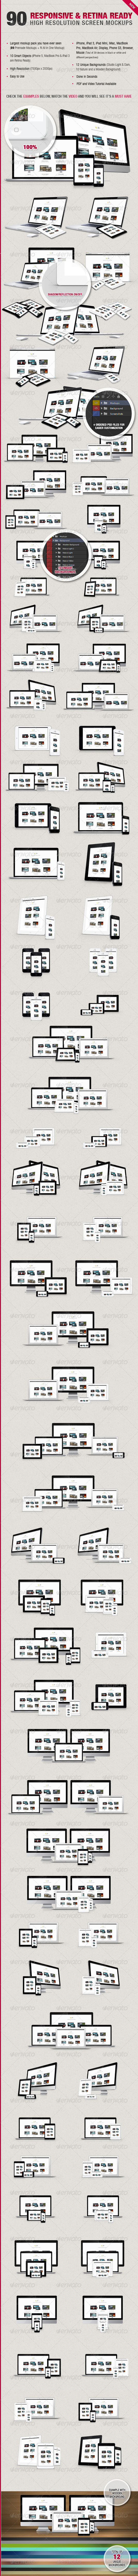 GraphicRiver 90 Responsive & Retina Ready Screen Mockups 4180234